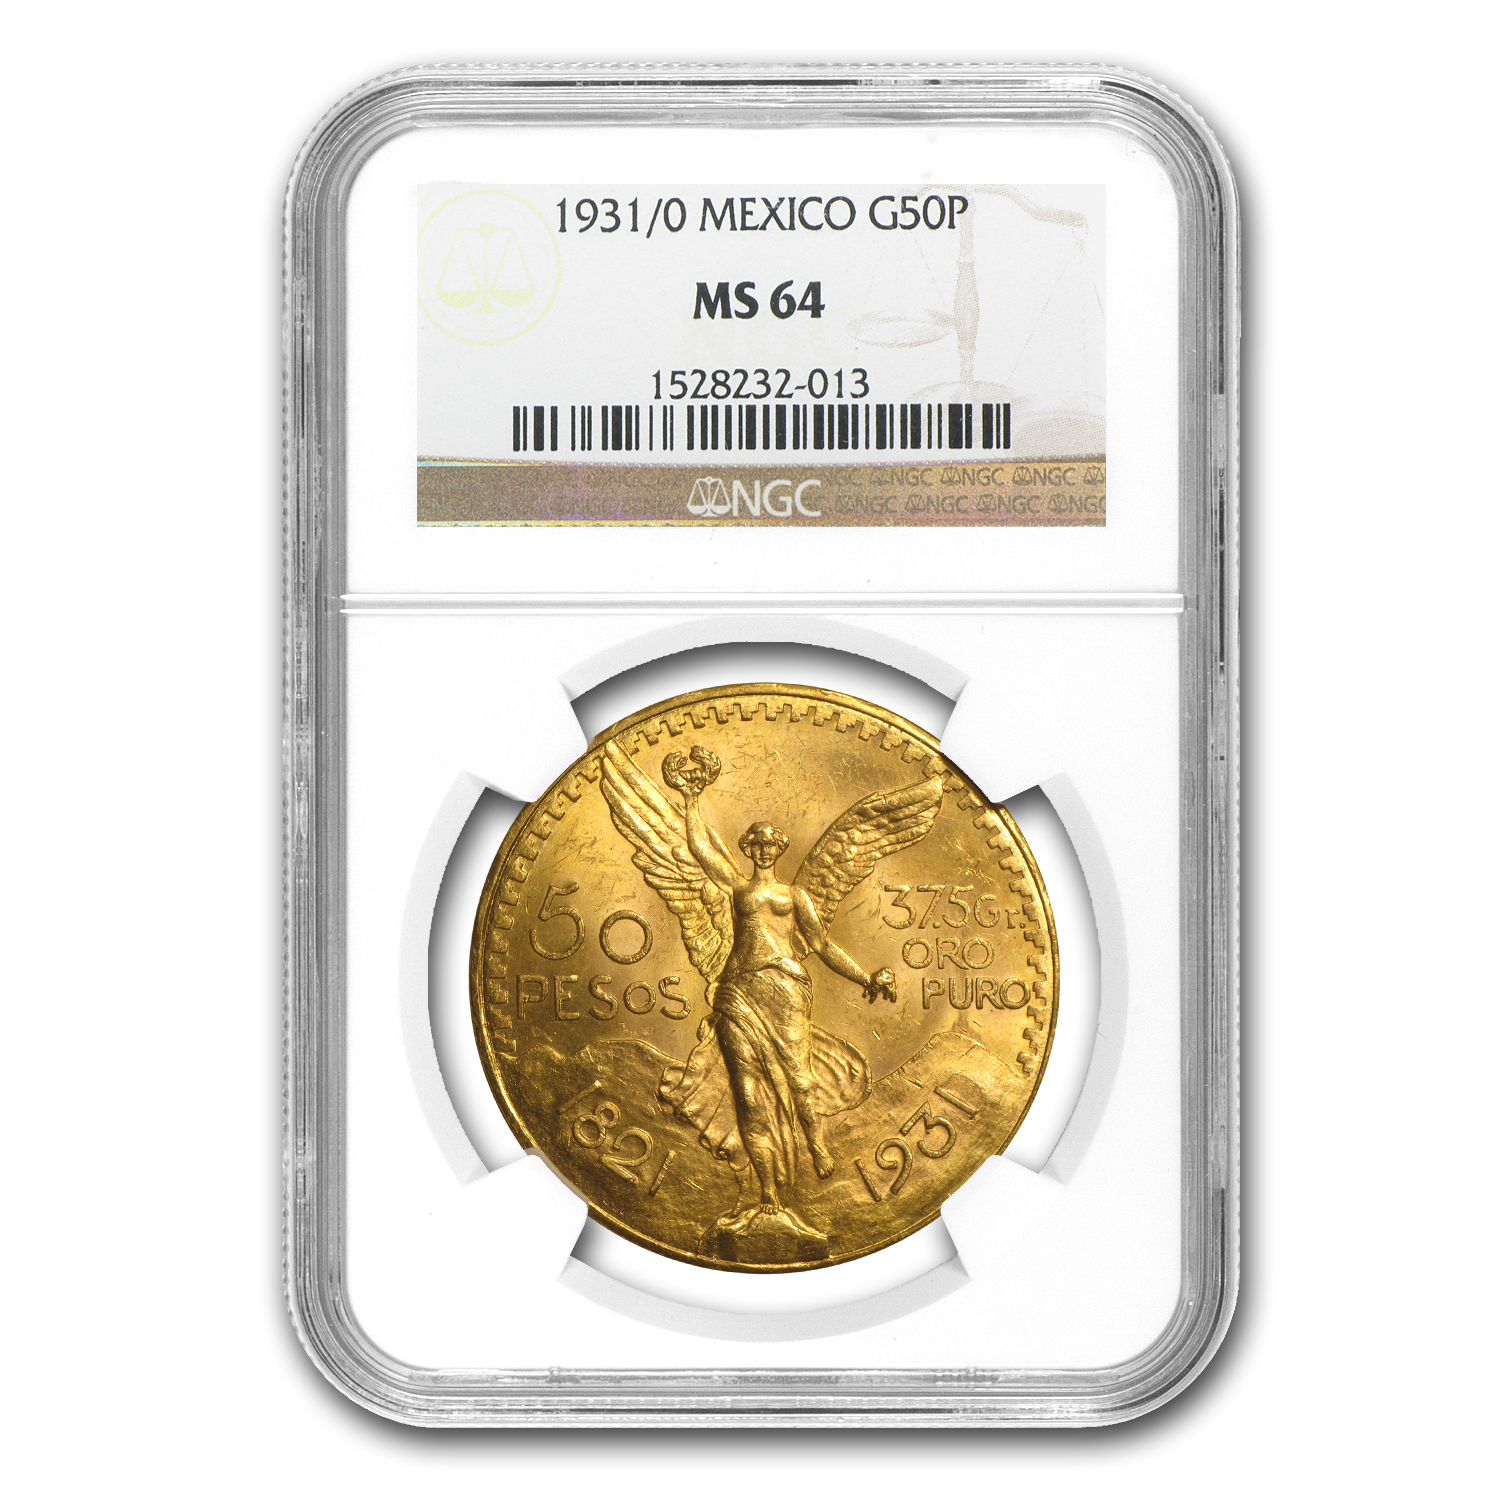 1931/0 Mexico 50 Pesos Gold MS-64 NGC